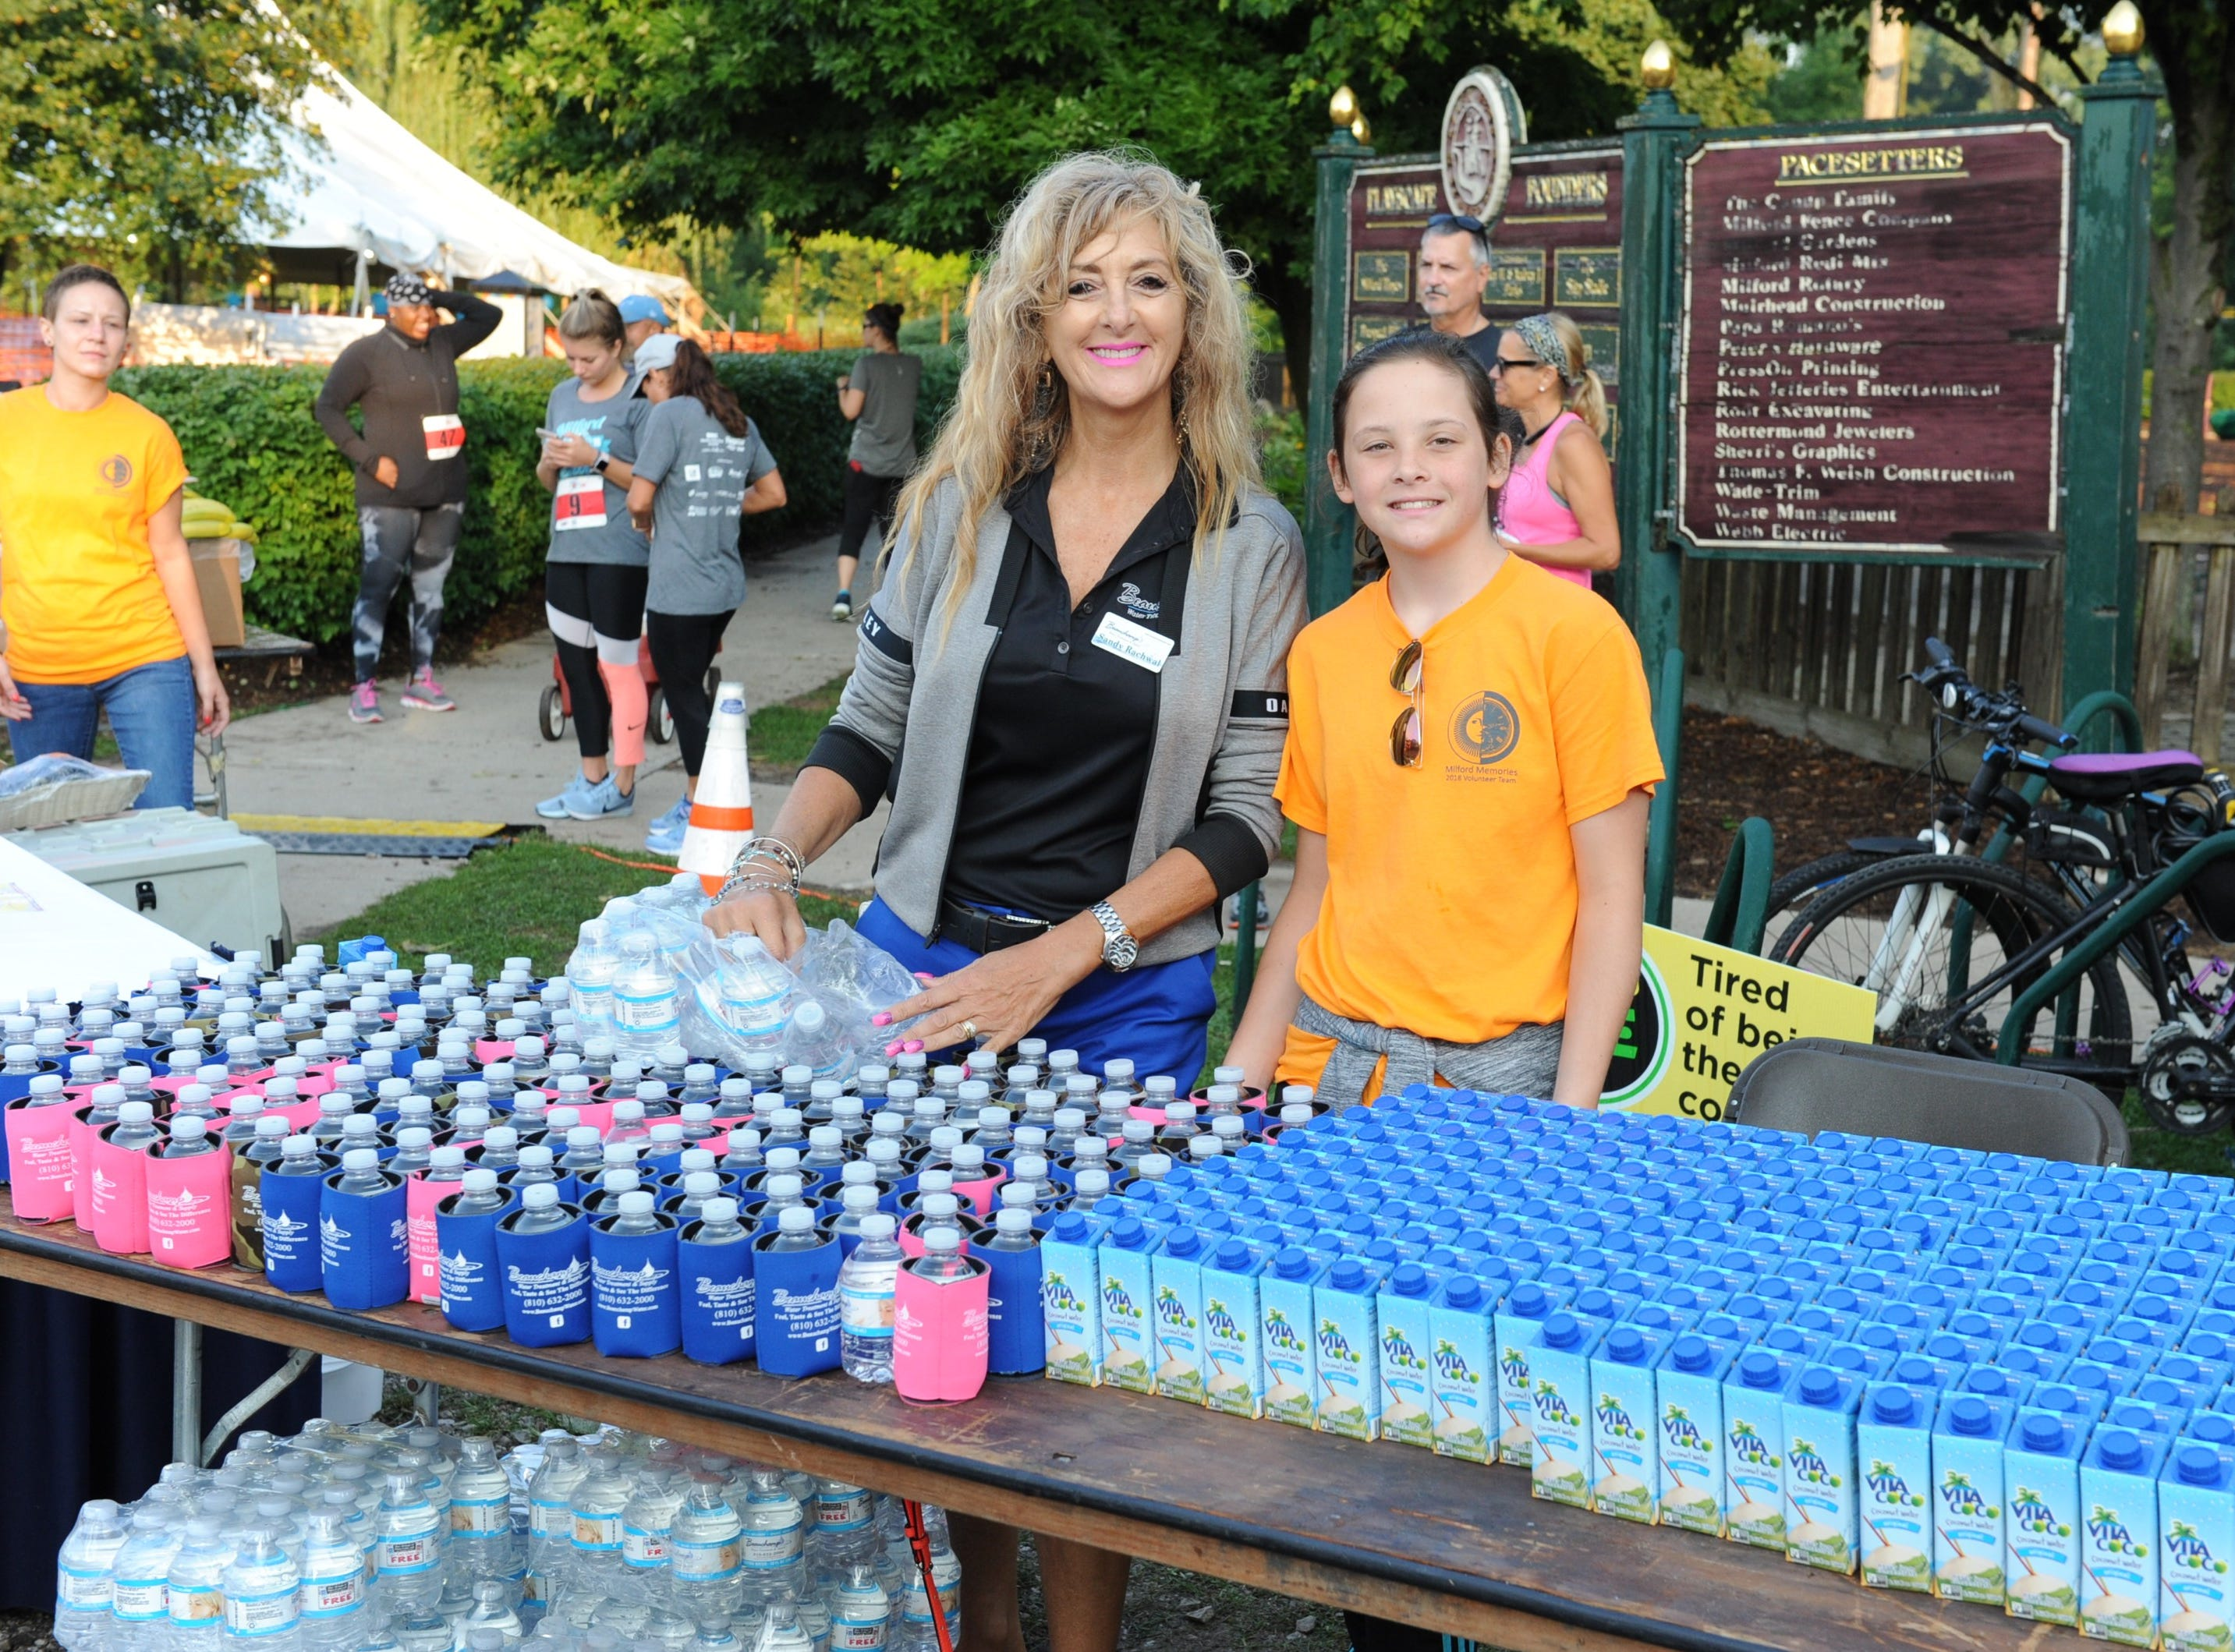 Sandy Rachwal and Emily Cryderman keep the runners hydrated Sunday morning in Milford.